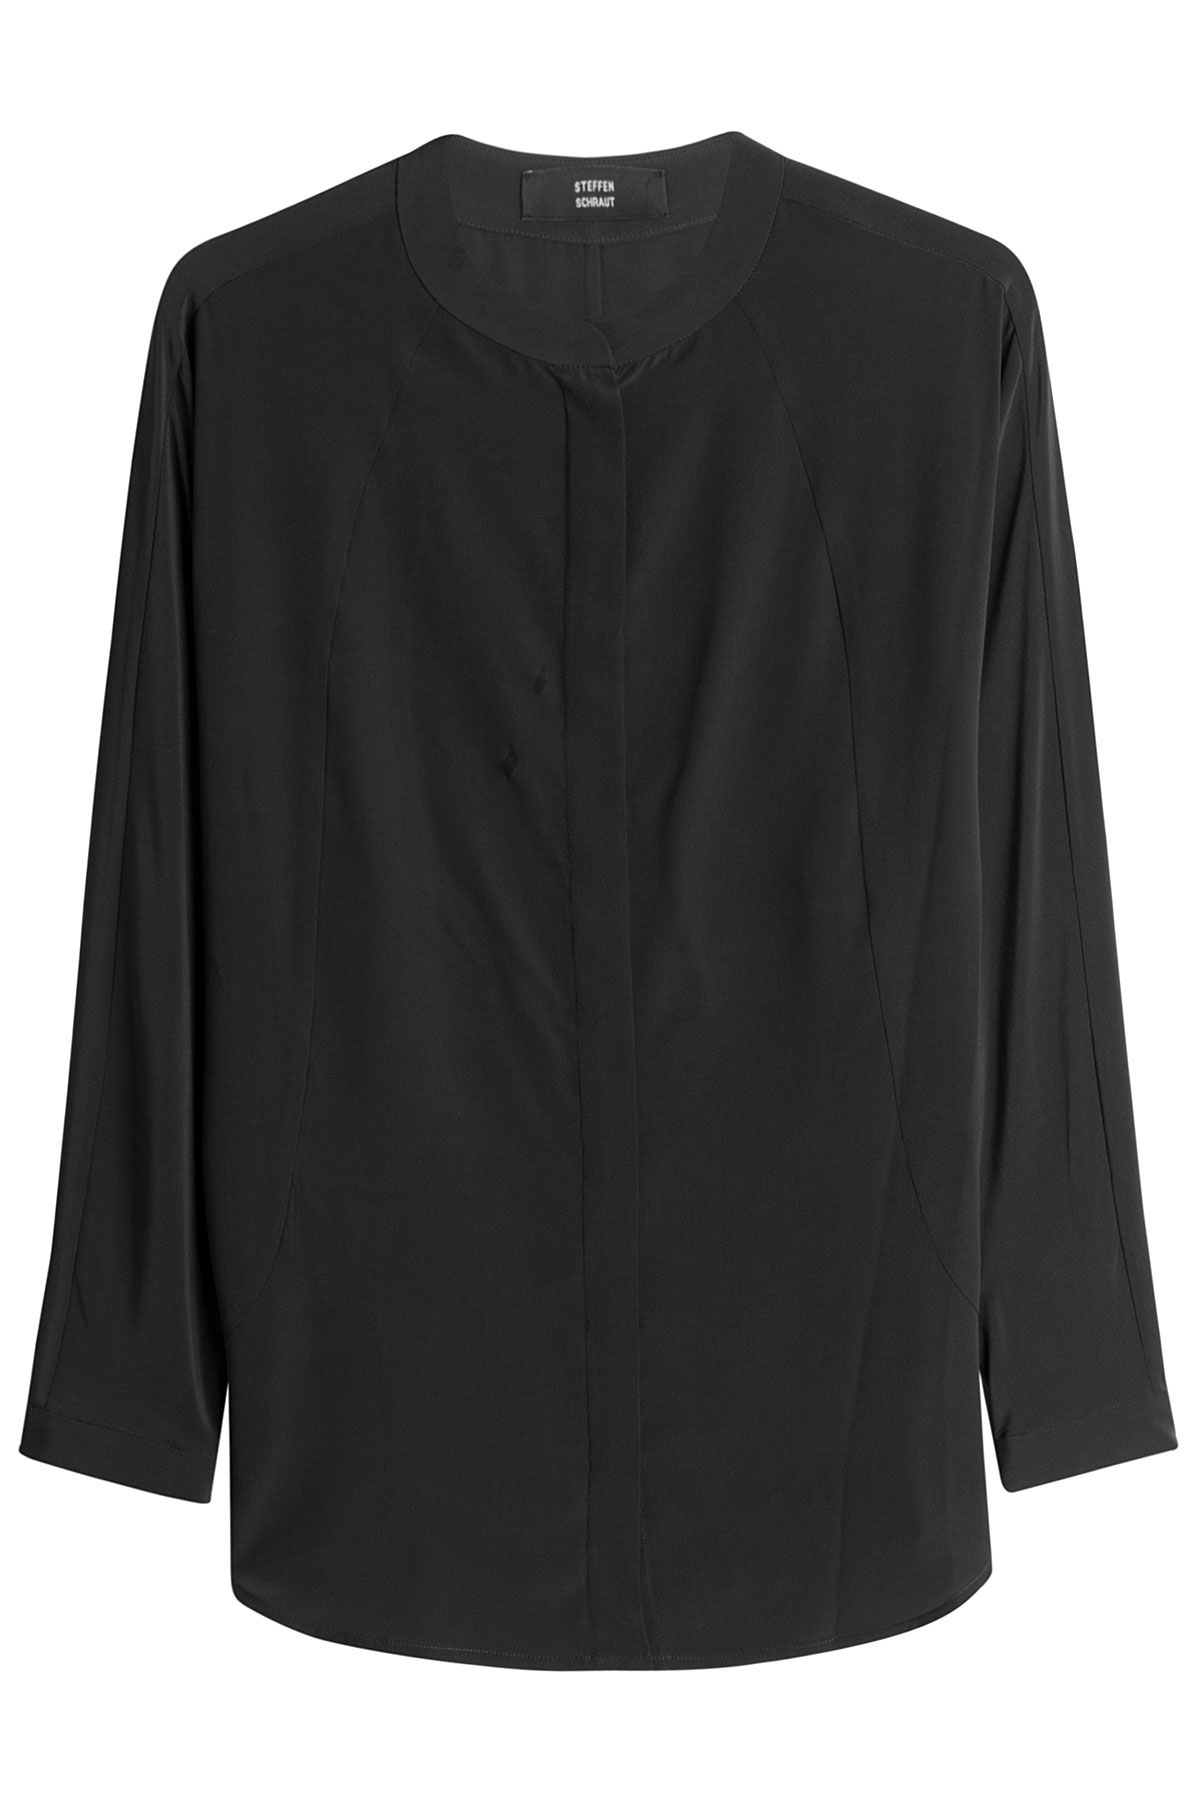 steffen schraut silk blouse black in black lyst. Black Bedroom Furniture Sets. Home Design Ideas